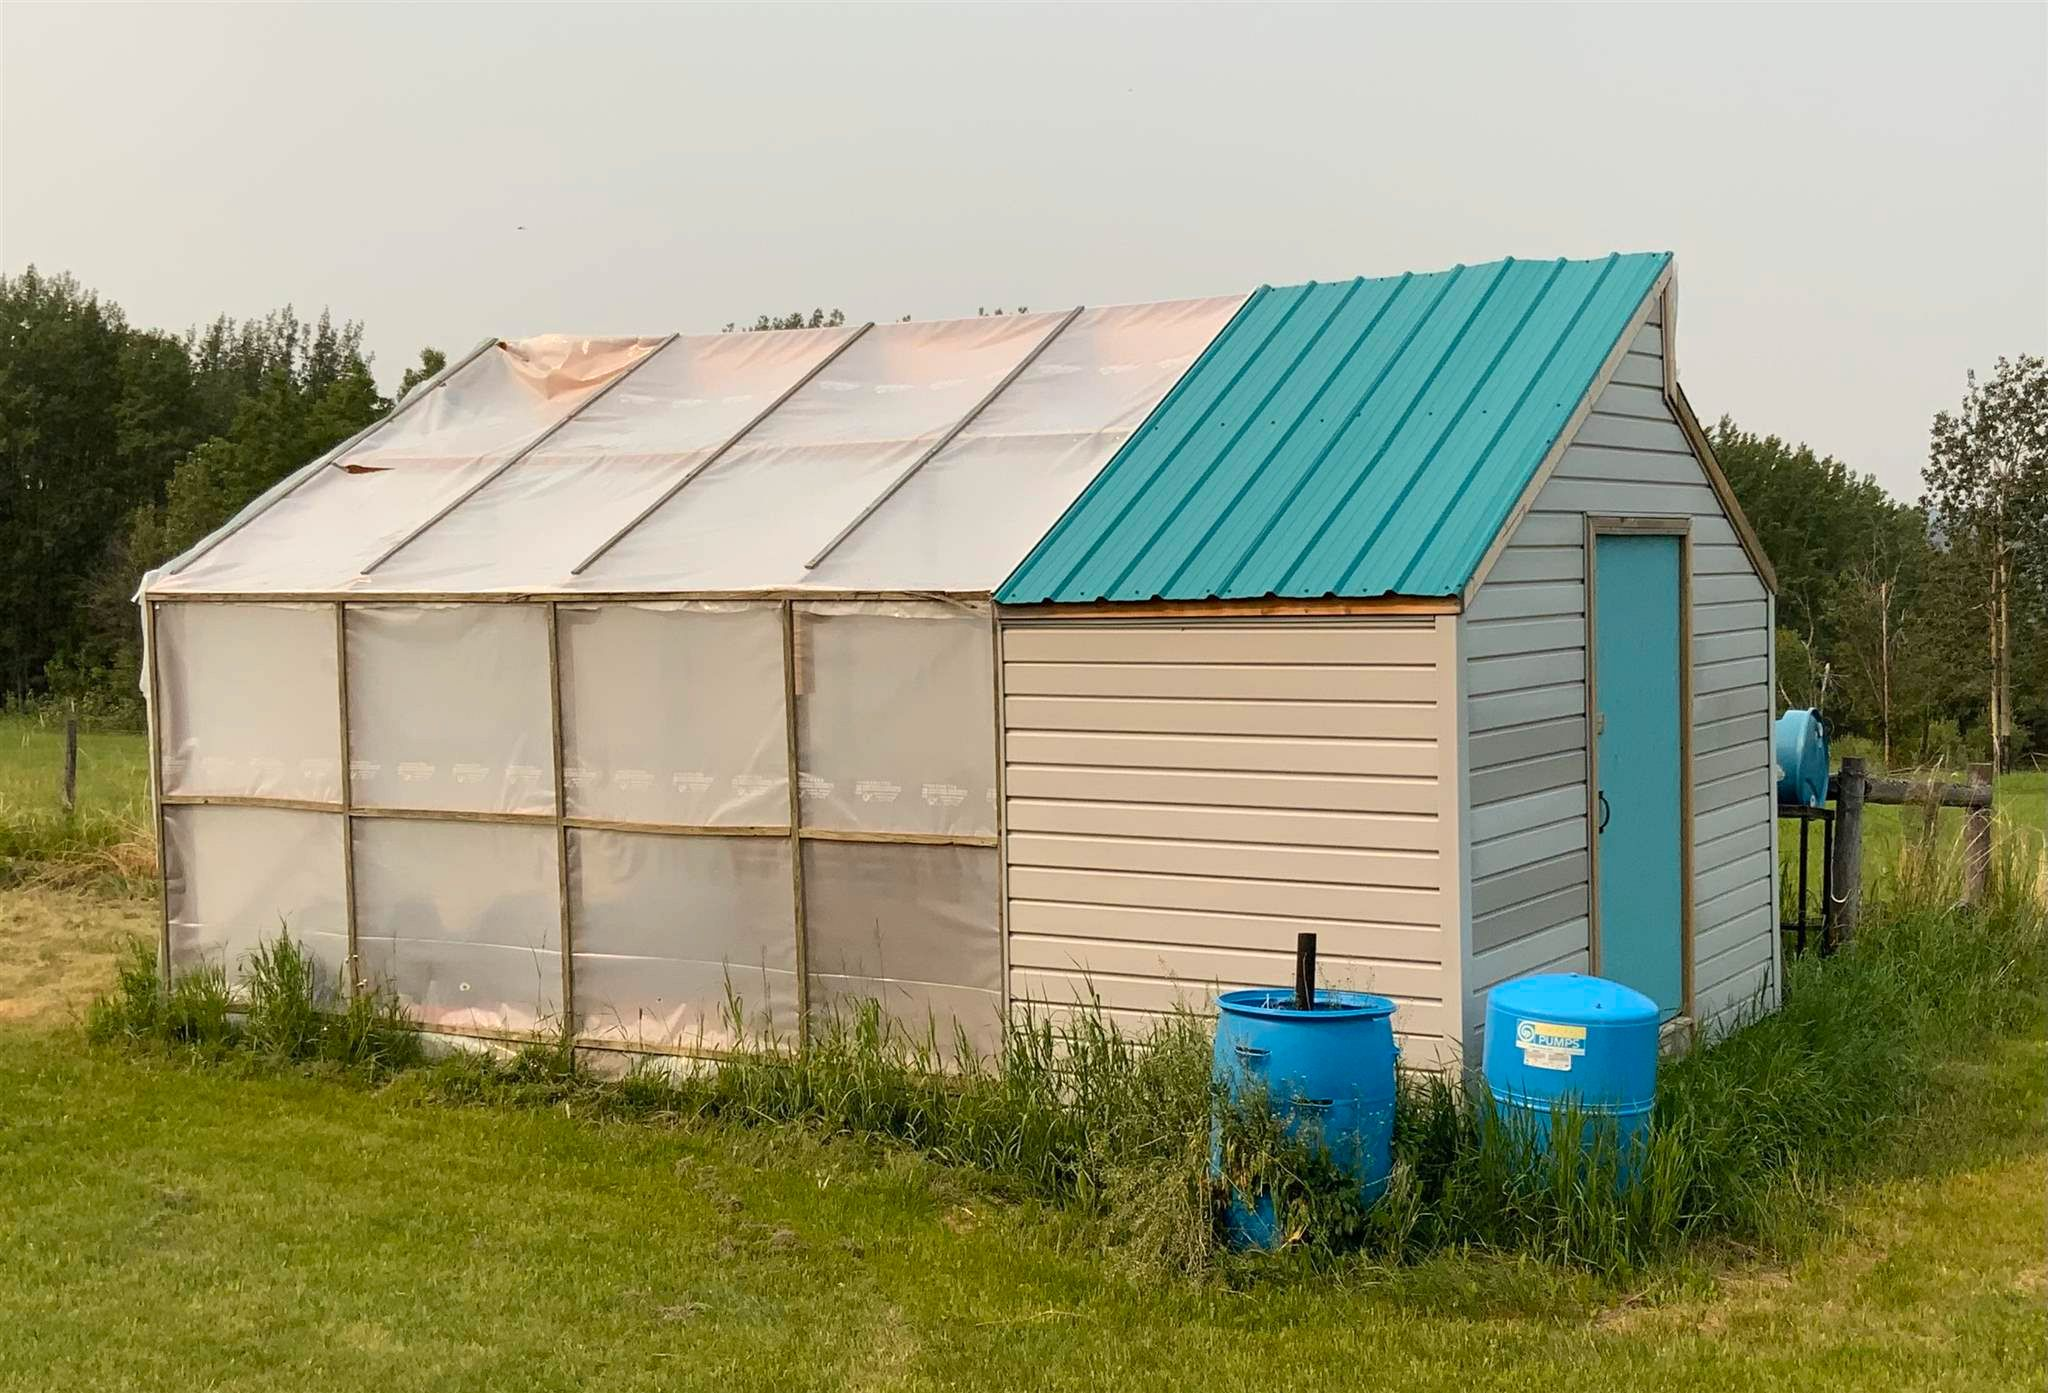 """Photo 17: Photos: 1206 GARCIA Road in Fort St. John: Fort St. John - Rural E 100th Manufactured Home for sale in """"GARCIA ROAD"""" (Fort St. John (Zone 60))  : MLS®# R2597287"""